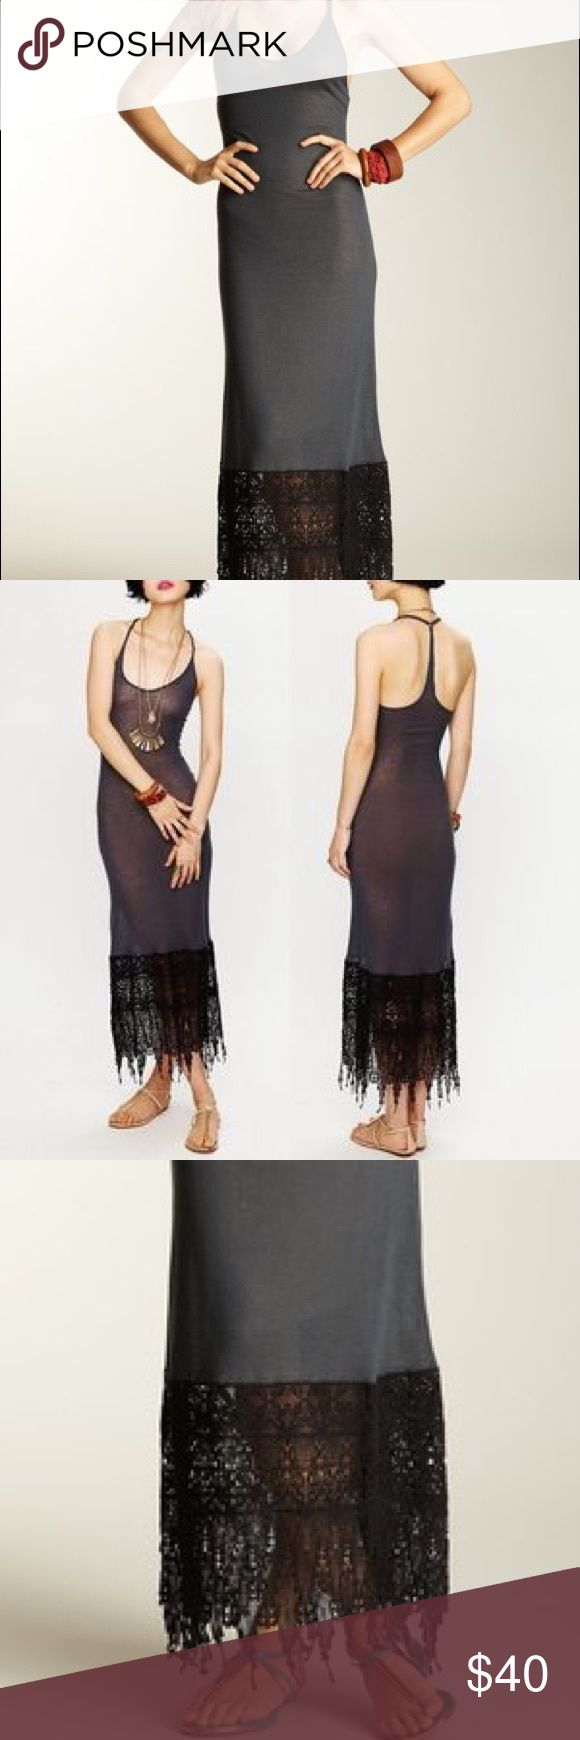 Crochet Maxi Dress Free People Grey Grey maxi dress thin and perfect for a formal summer event or casual night out. It's a good idea to wear a slip underneath! Worn twice Free People Dresses Maxi